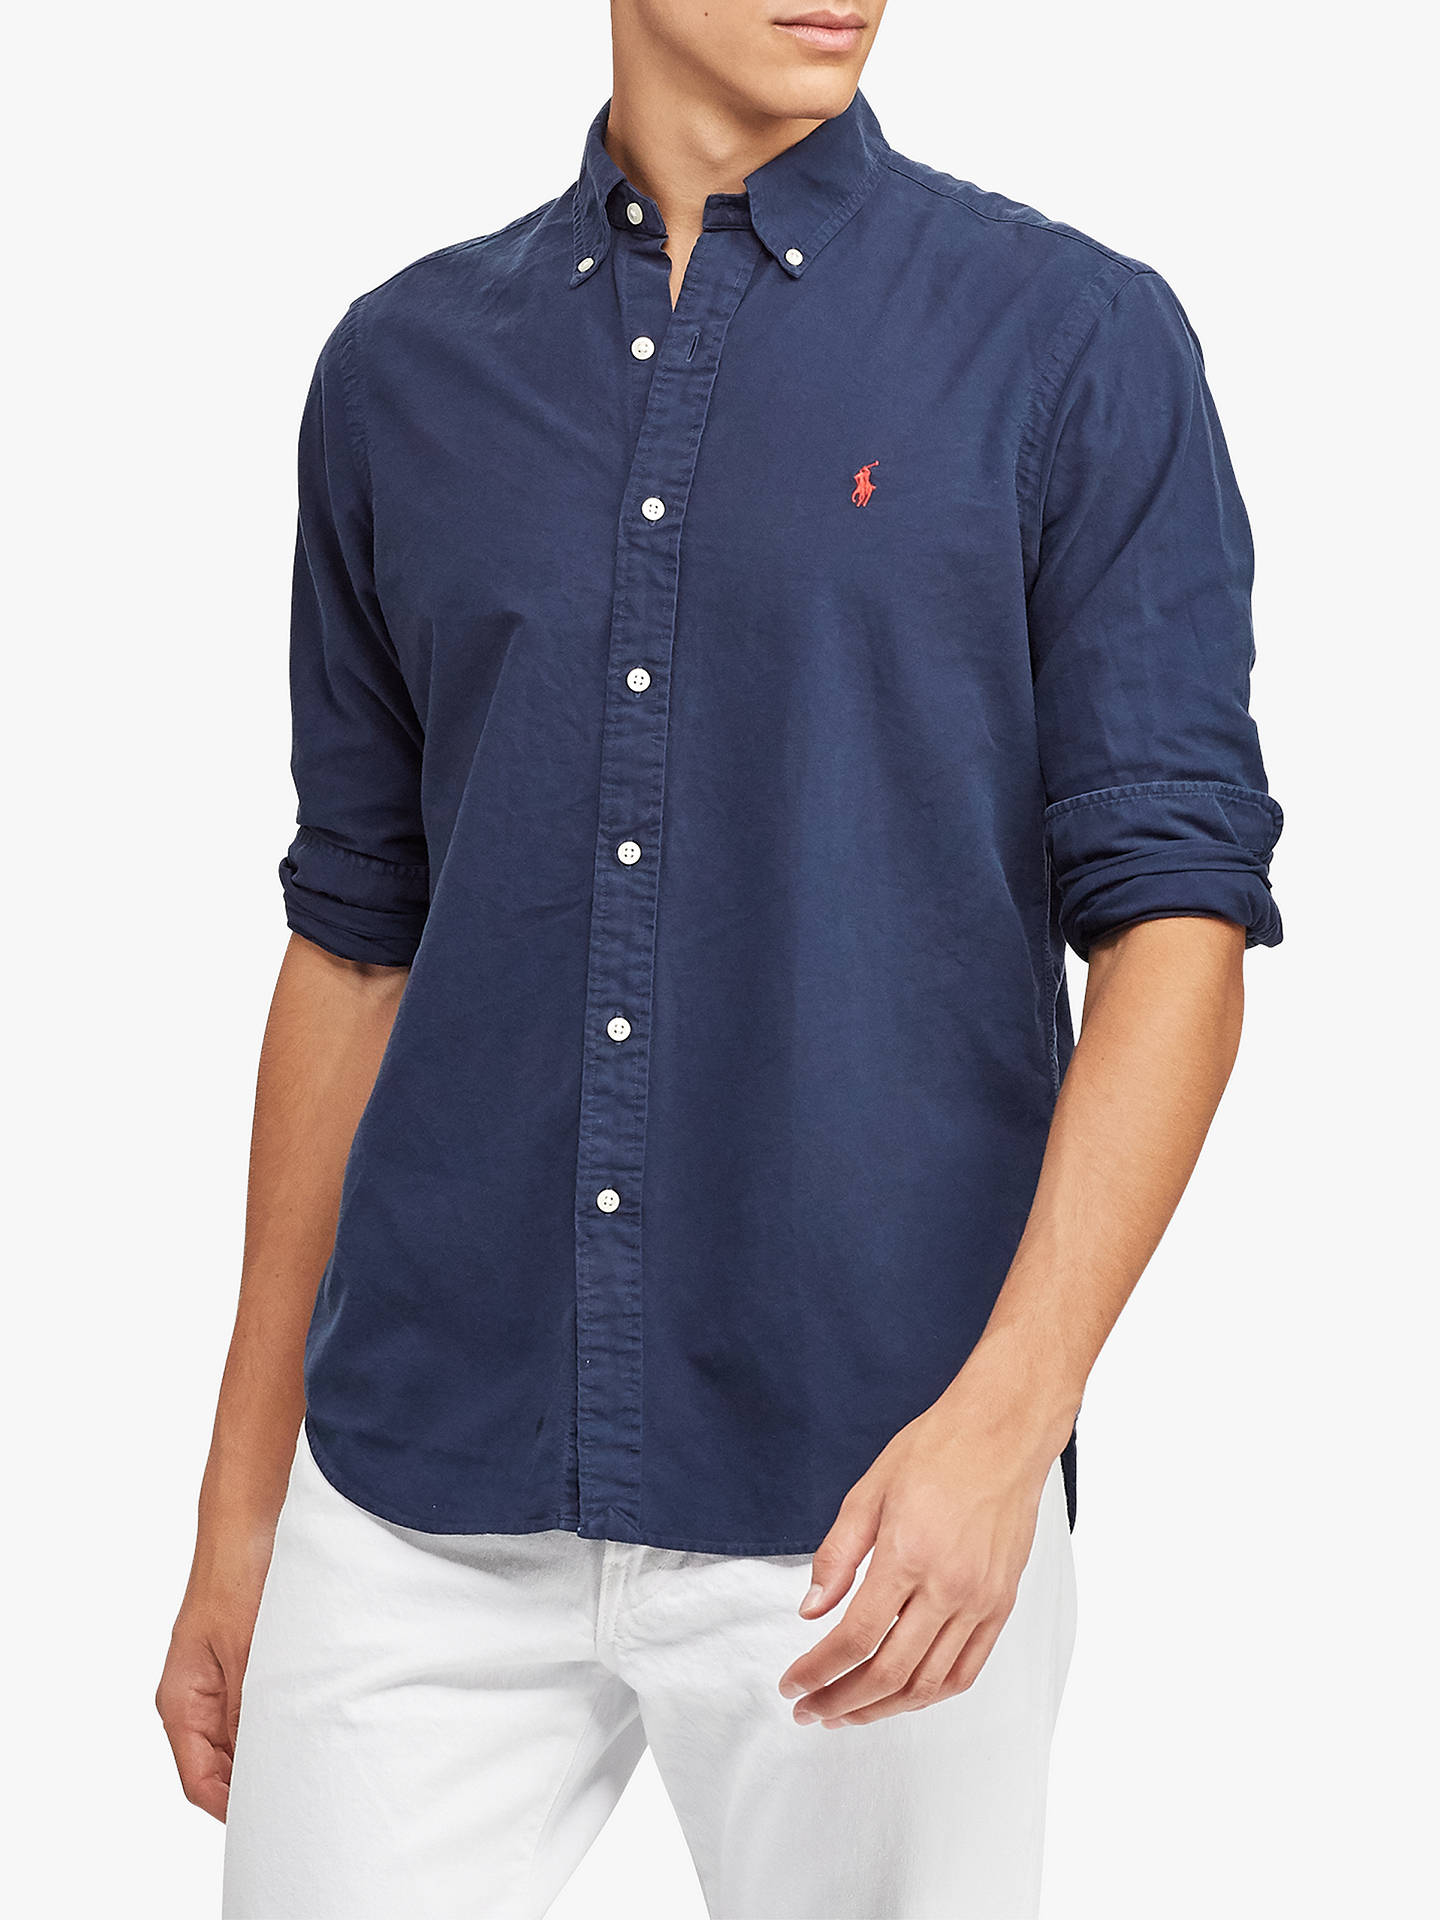 dc12af85 Buy Polo Ralph Lauren Long Sleeve Slim Fit Button Down Shirt, Navy, S  Online ...